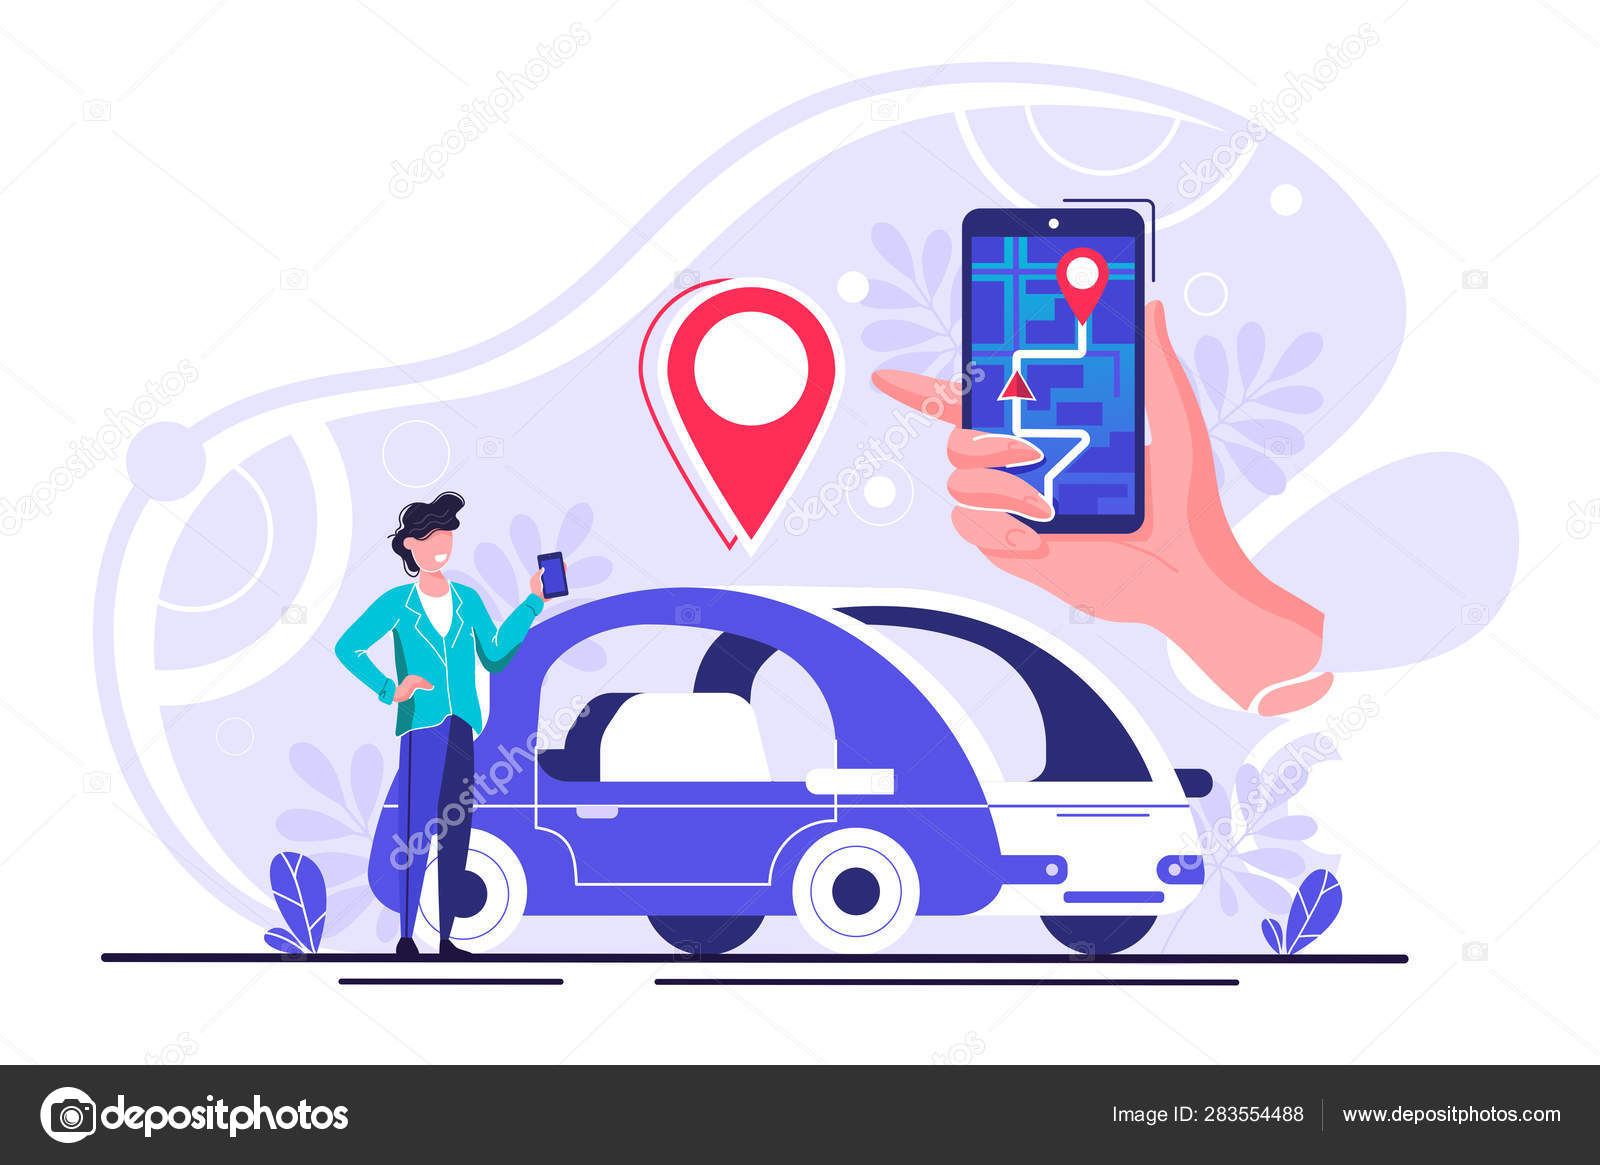 Gps system, cartography display, location on the city map